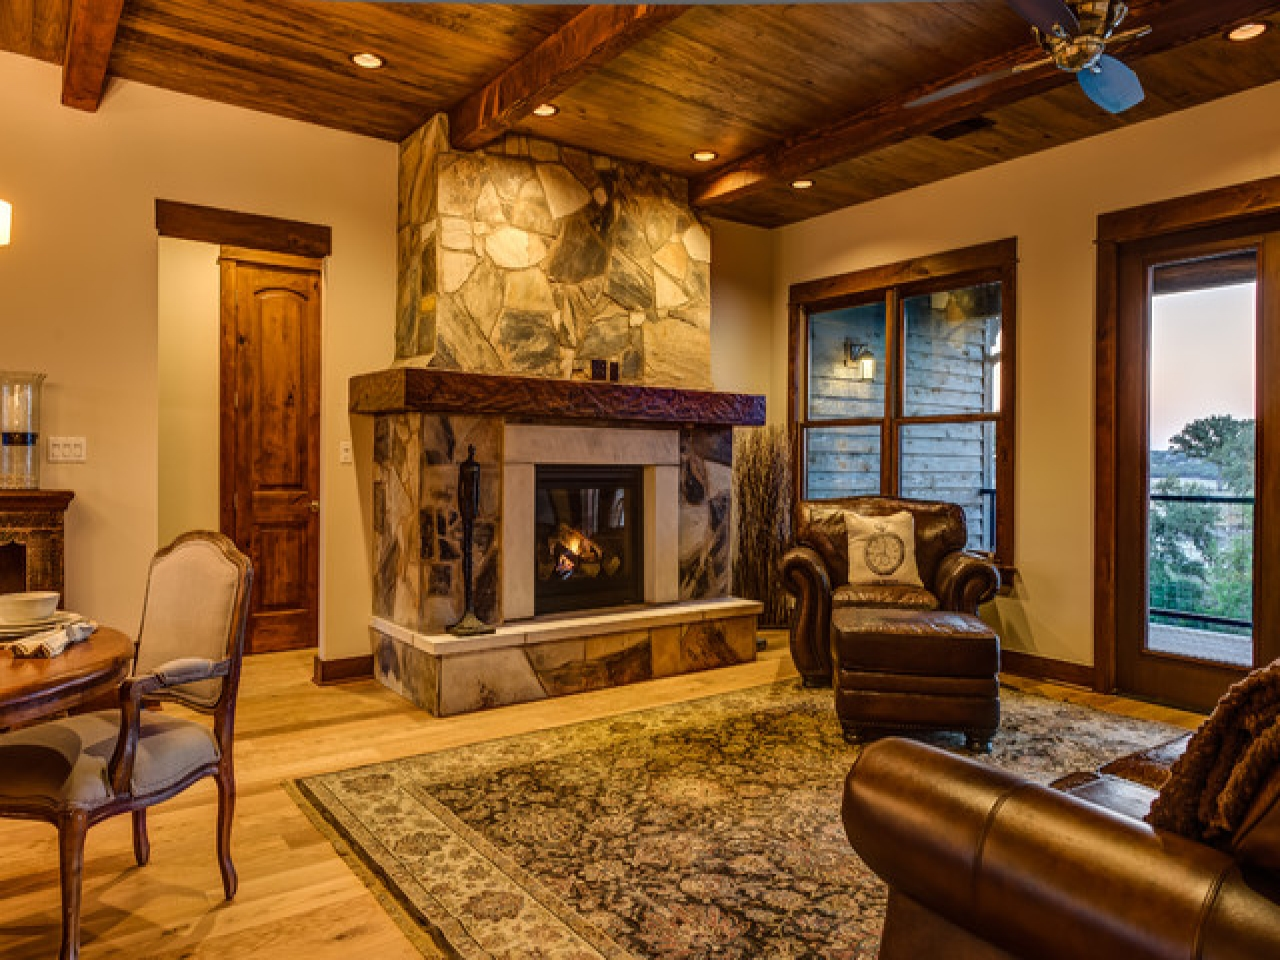 Classic And Rustic Living Room With Stone Fireplace And Carpet Flooring (Image 3 of 10)